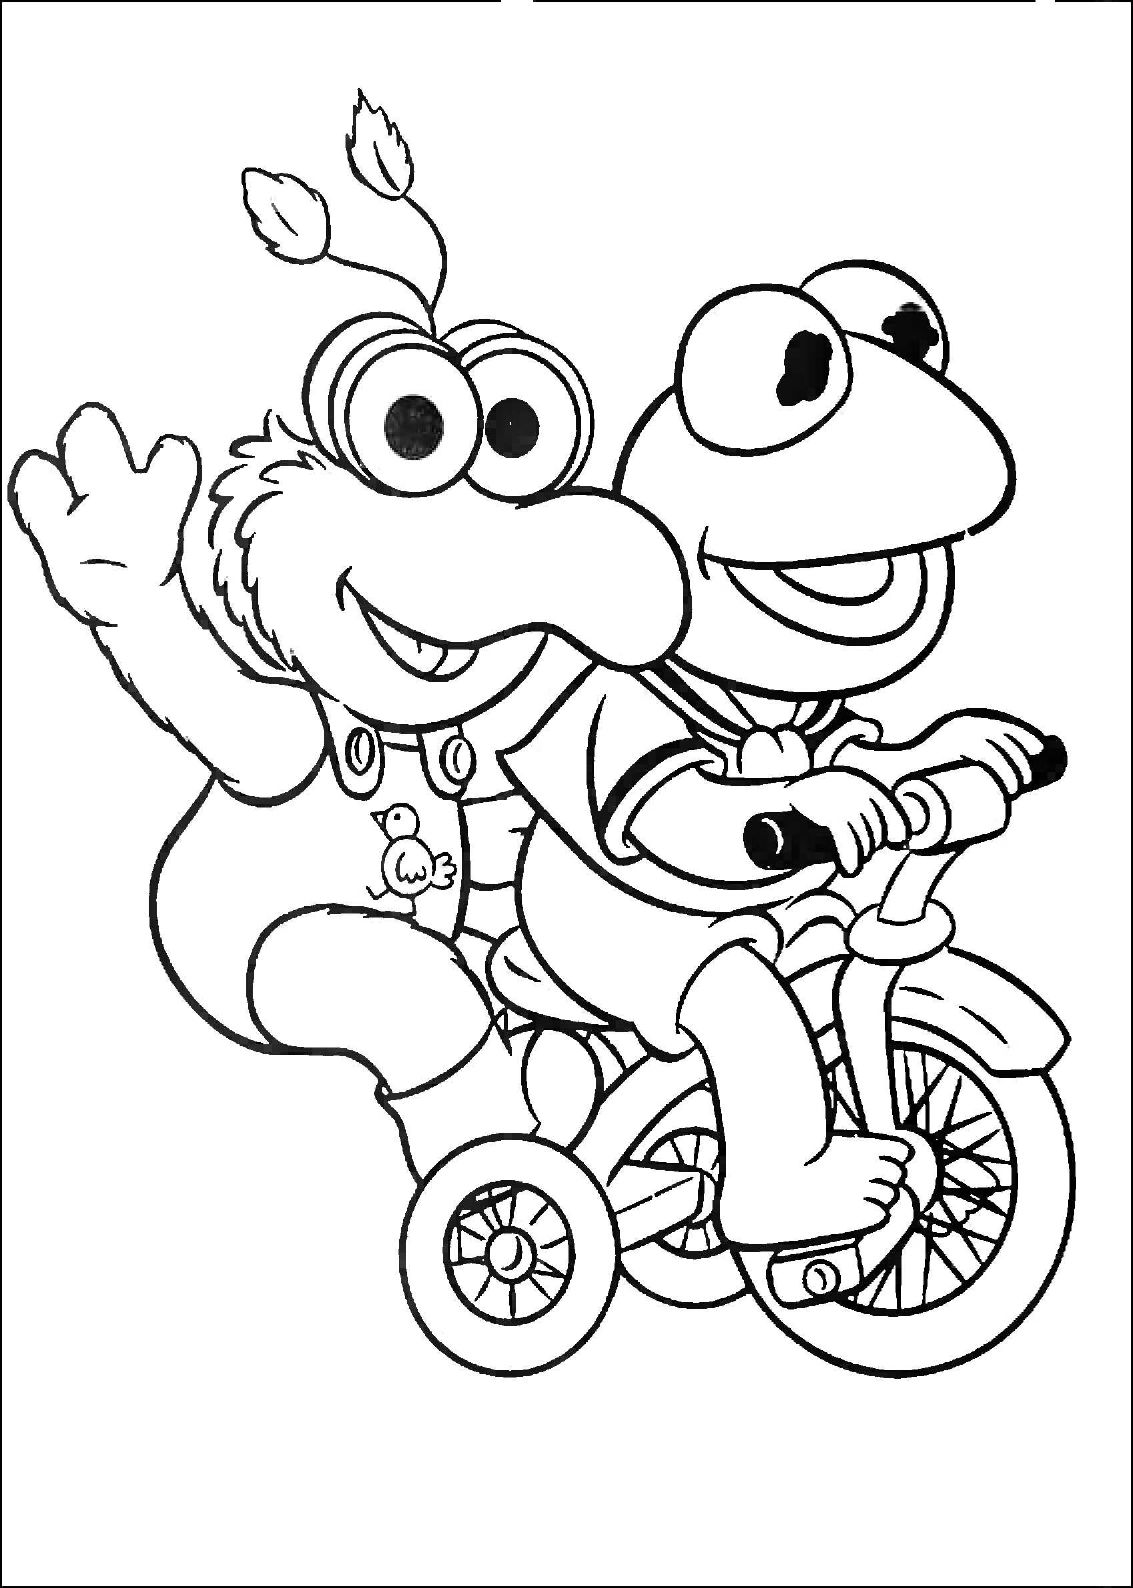 crmit coloring pages - photo#33